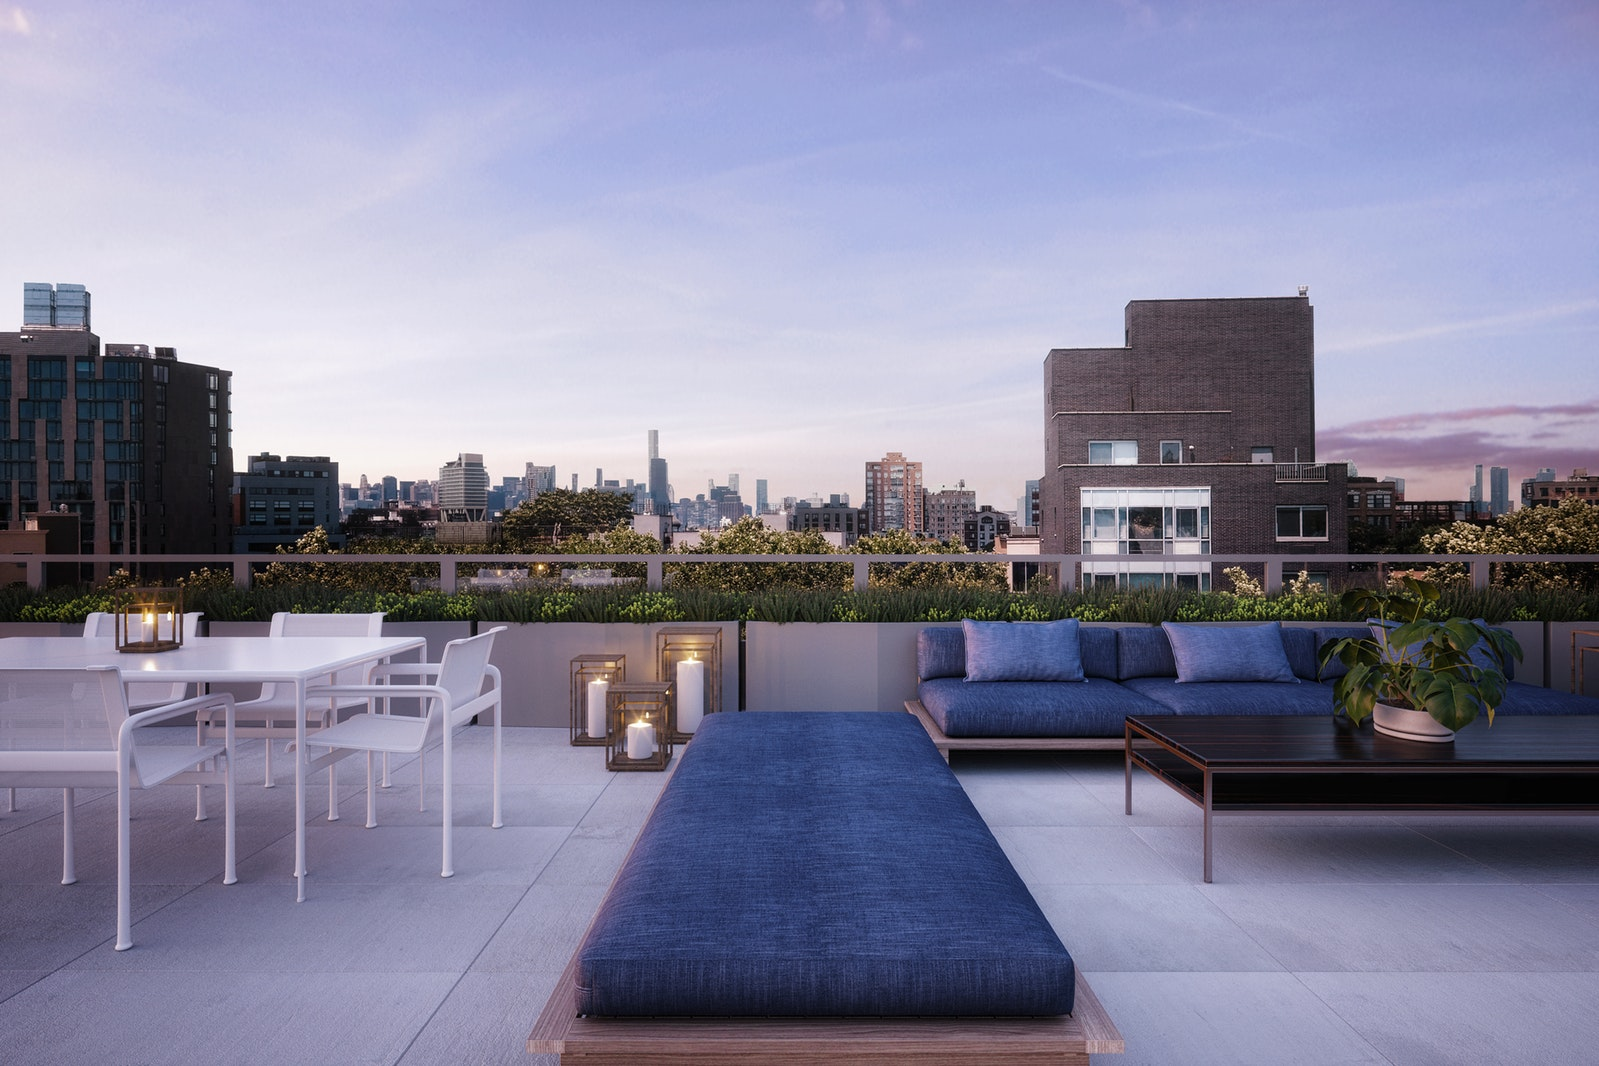 21 Powers Street 1a, Williamsburg, Brooklyn, NY, 11211, $1,249,000, Property For Sale, Halstead Real Estate, Photo 8